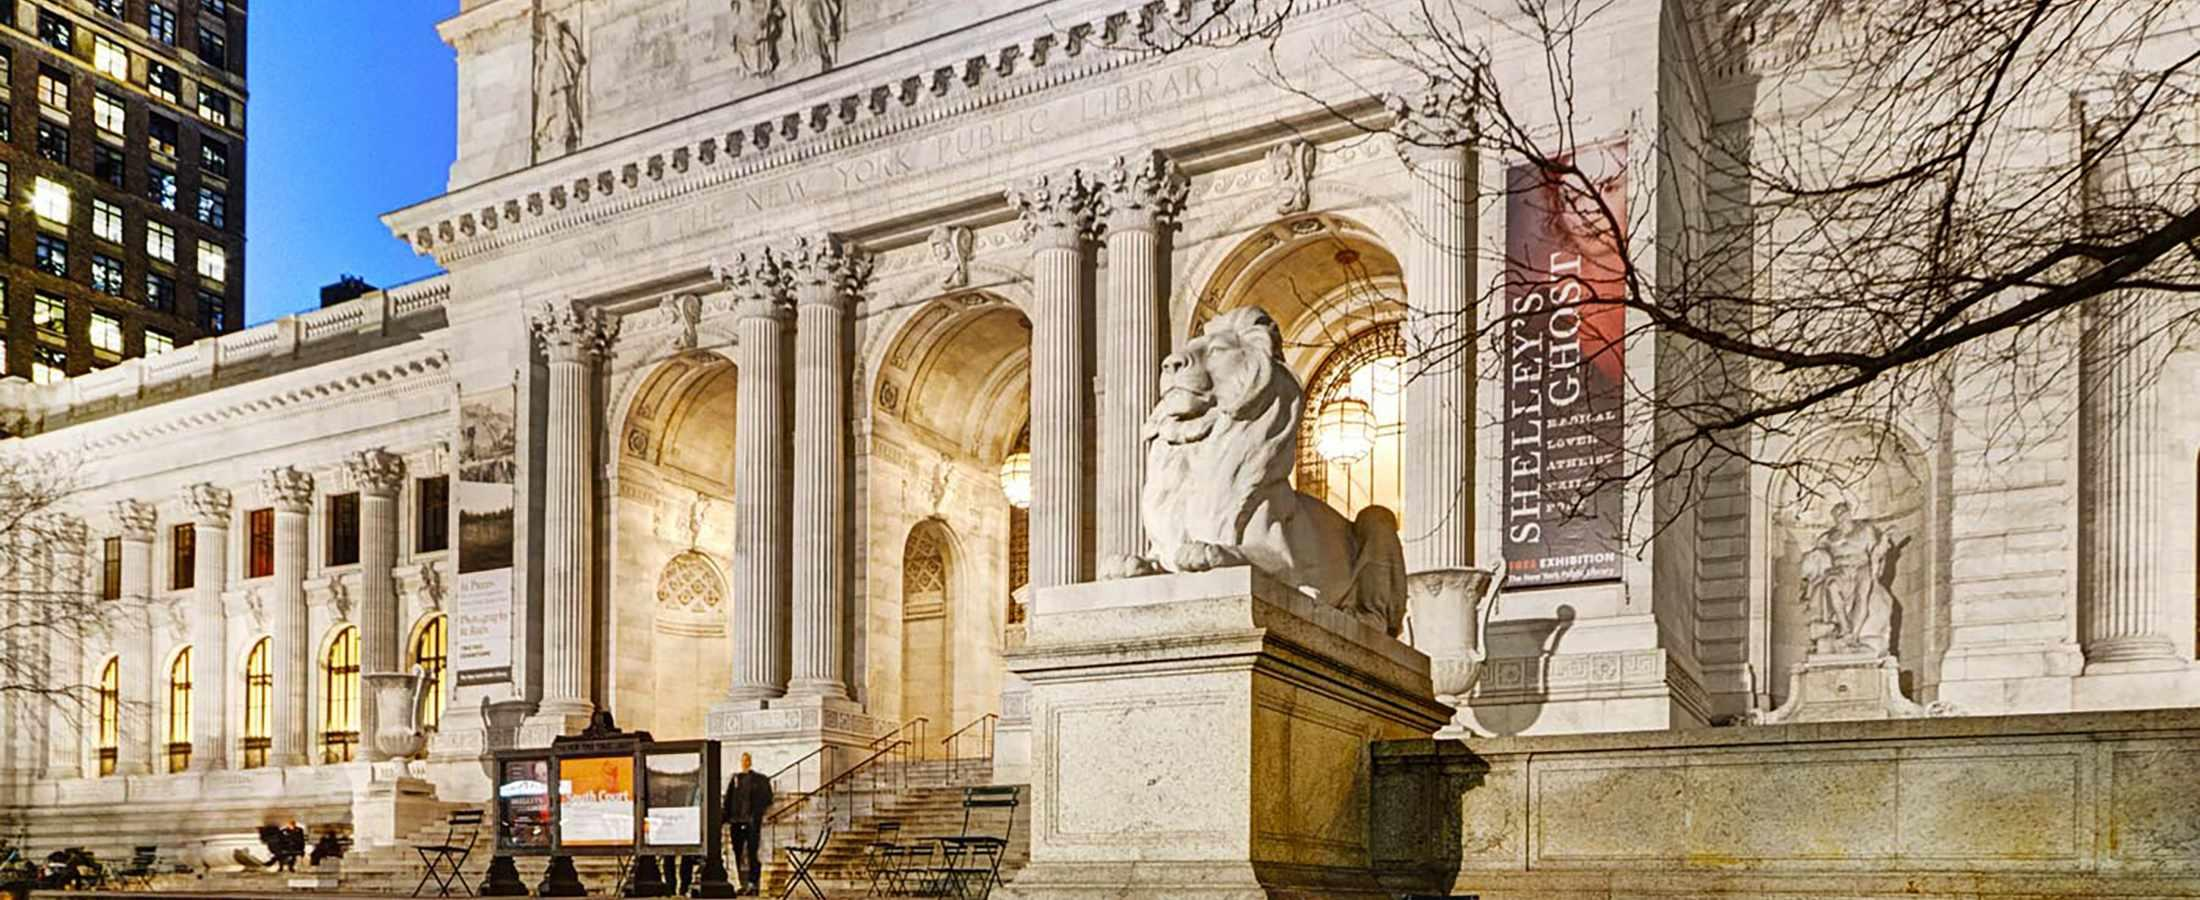 The Library Hotel is just steps from the iconic New York Public Library!